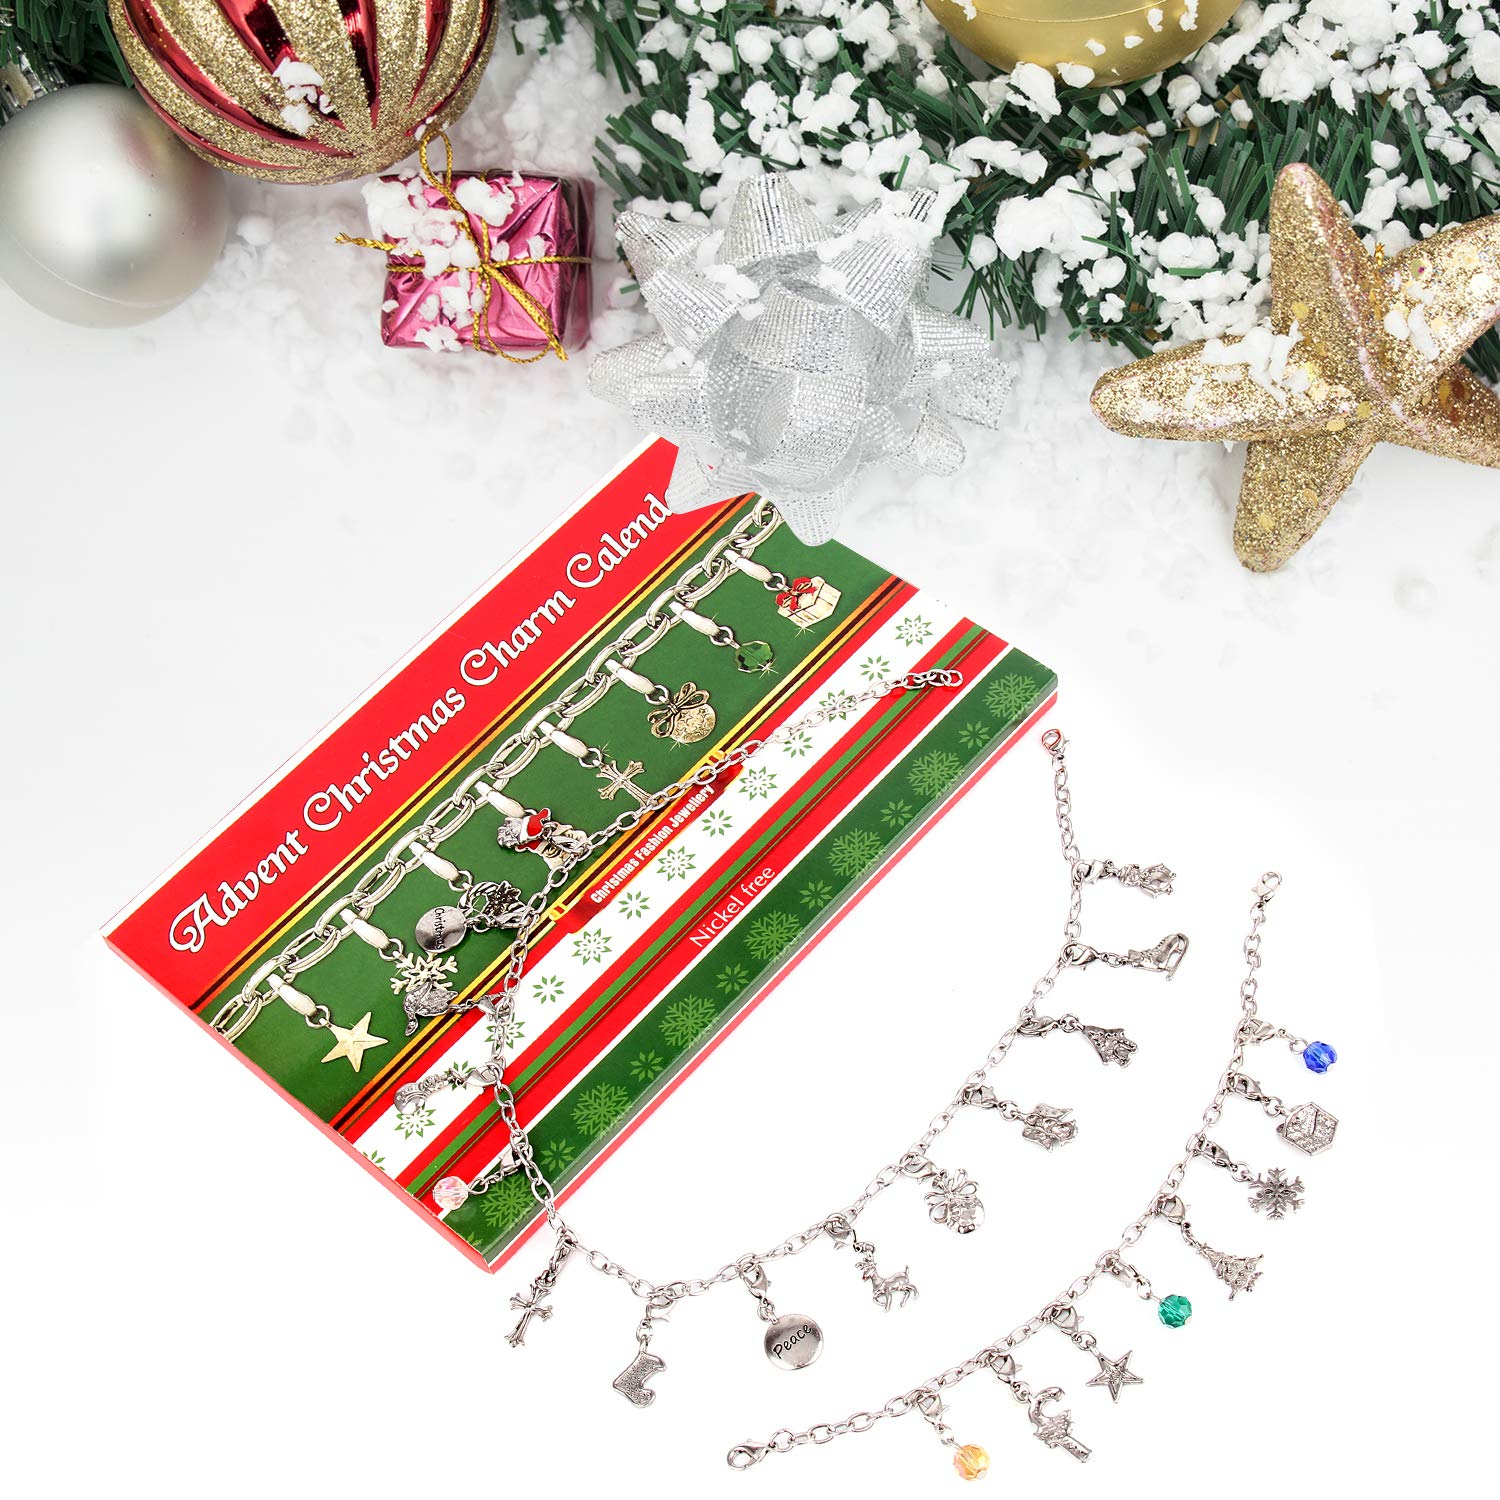 Adventskalender kinder DIY Armband Halskette Set mit 22 Charms